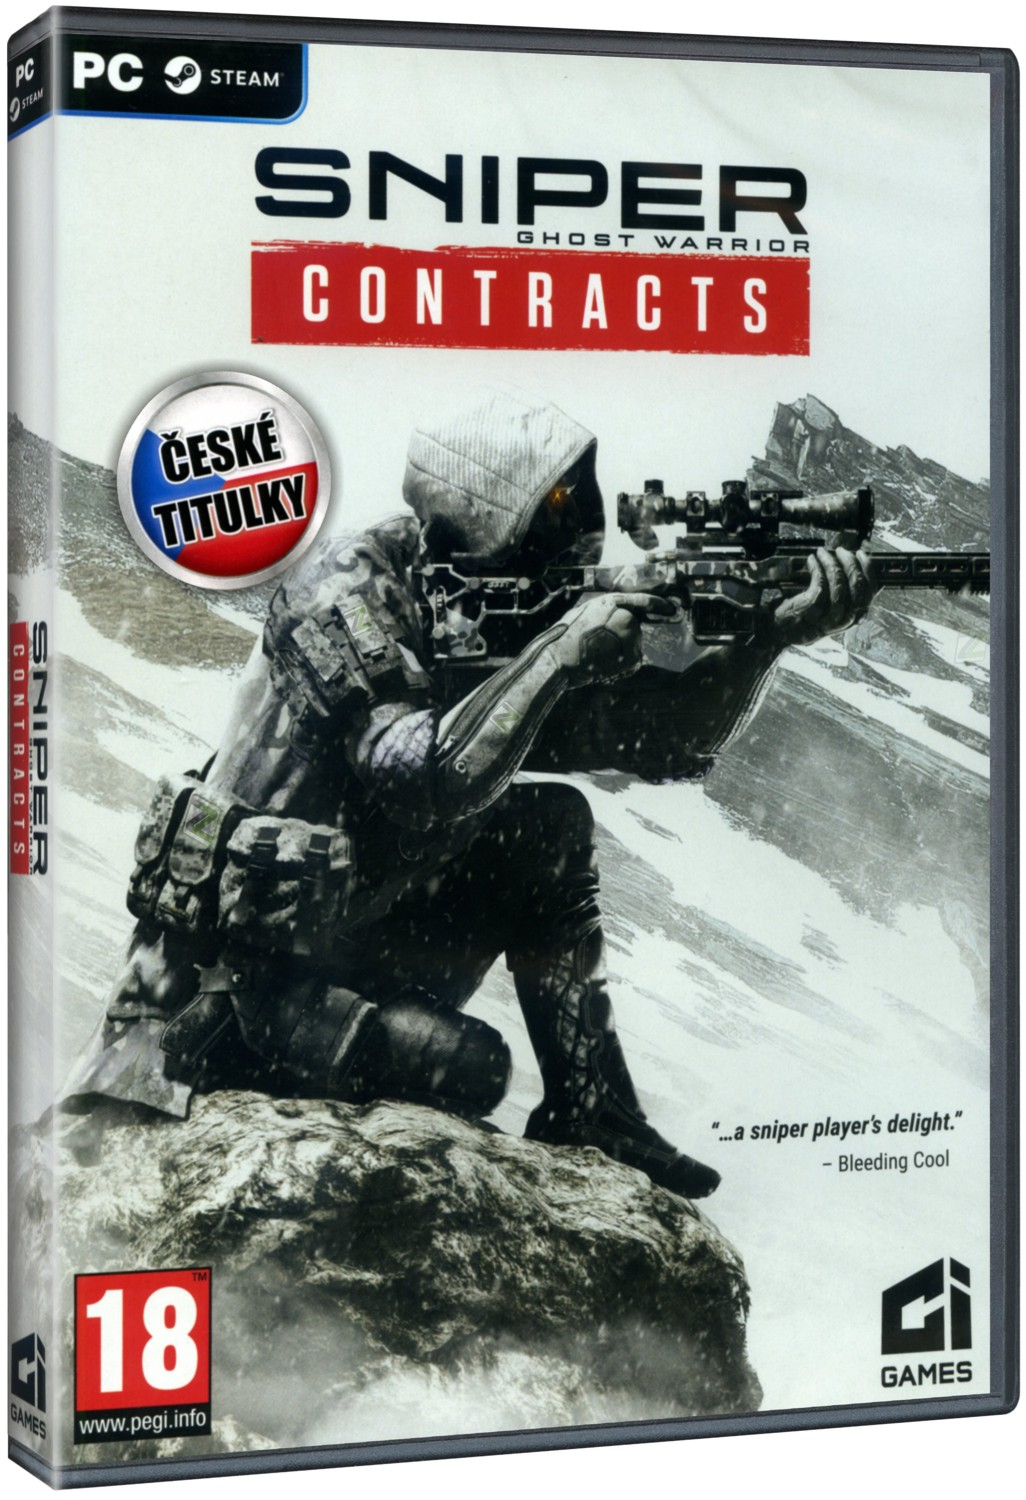 Sniper: Ghost Warrior Contracts - PC